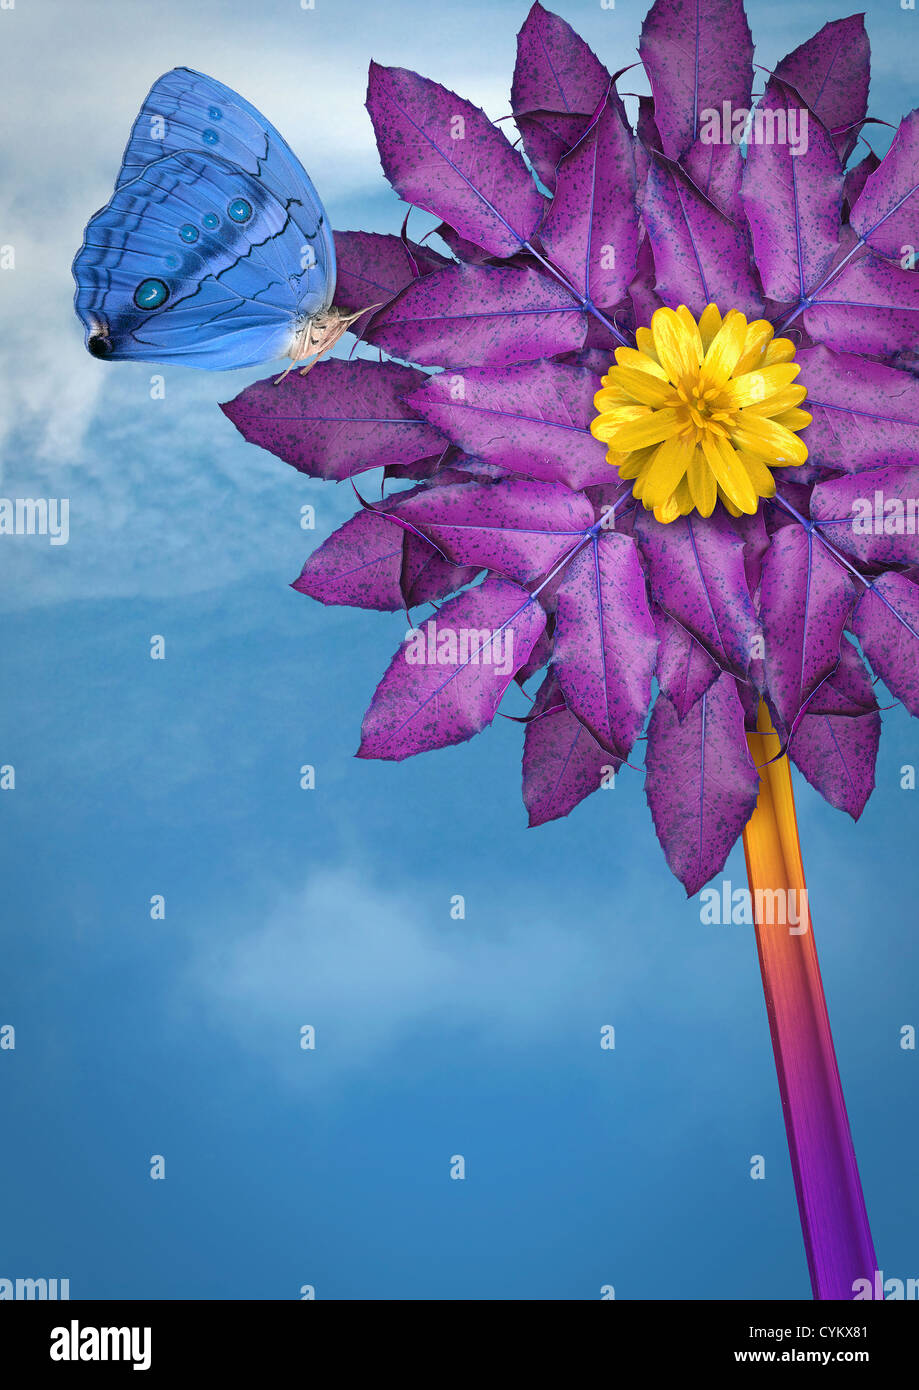 Close up of butterfly landing on flower - Stock Image